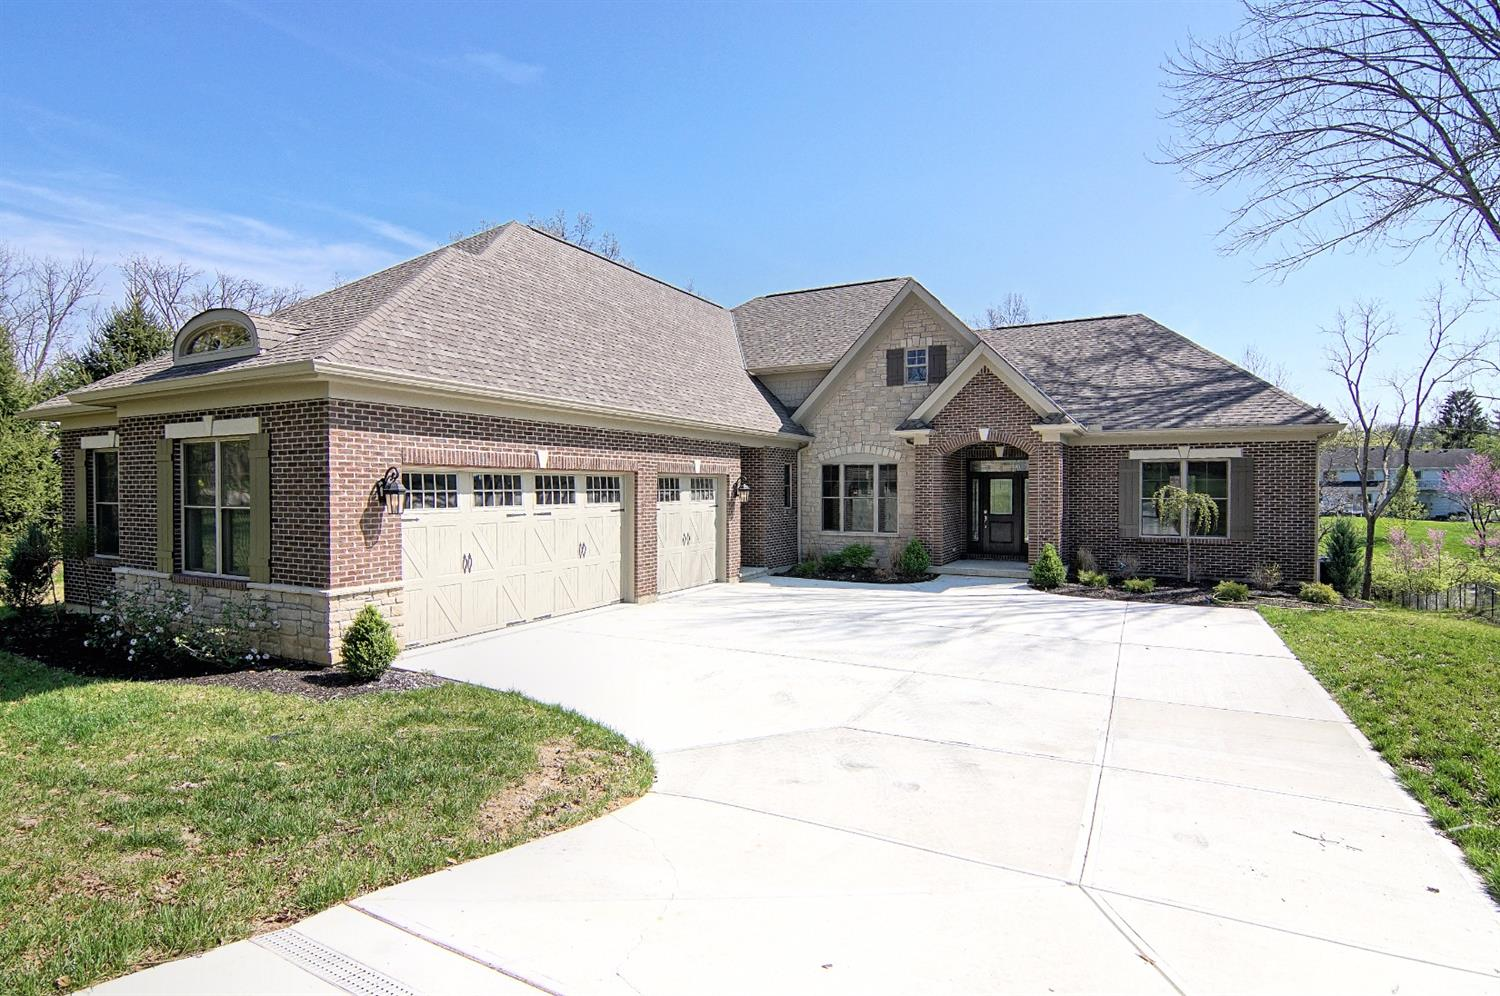 10460 Adventure Lane, Montgomery, OH 45242